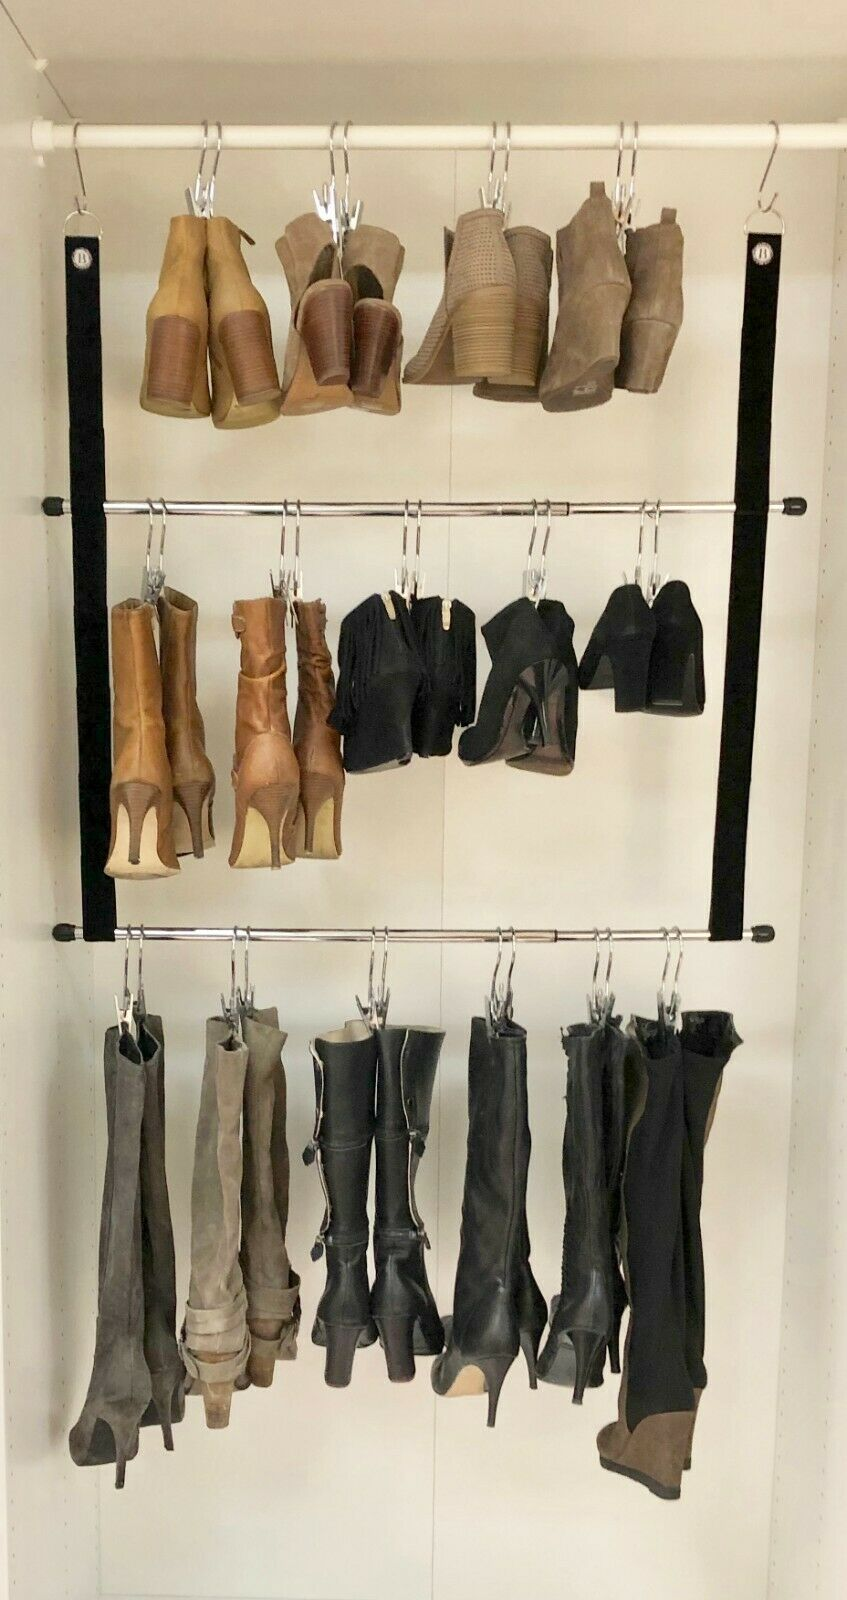 Double decker shoe storage 1 - 20 clever shoe storage ideas for clutter-free living